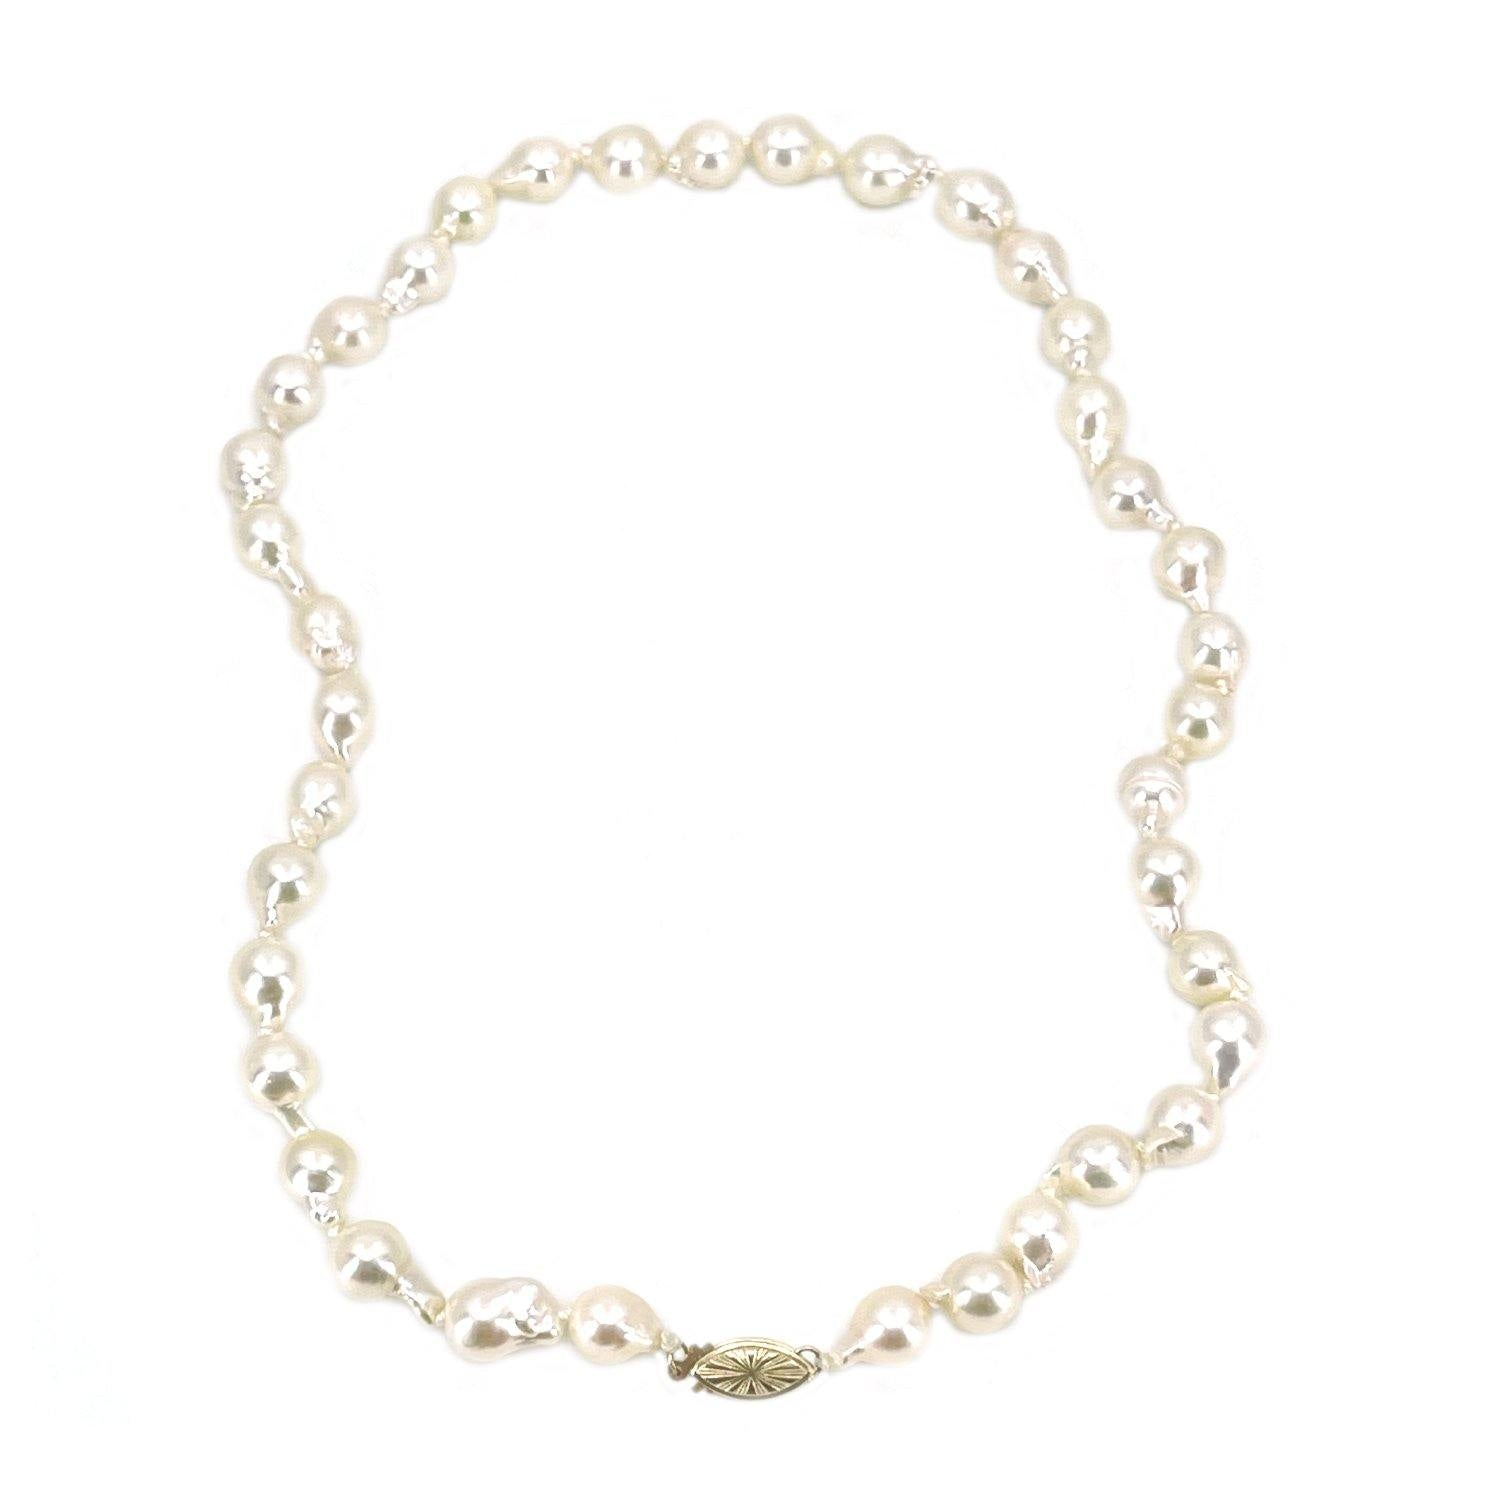 Sunburst Baroque Fire Ball Japanese Saltwater Cultured Akoya Pearl Strand - 14K Yellow Gold 15.50 Inch